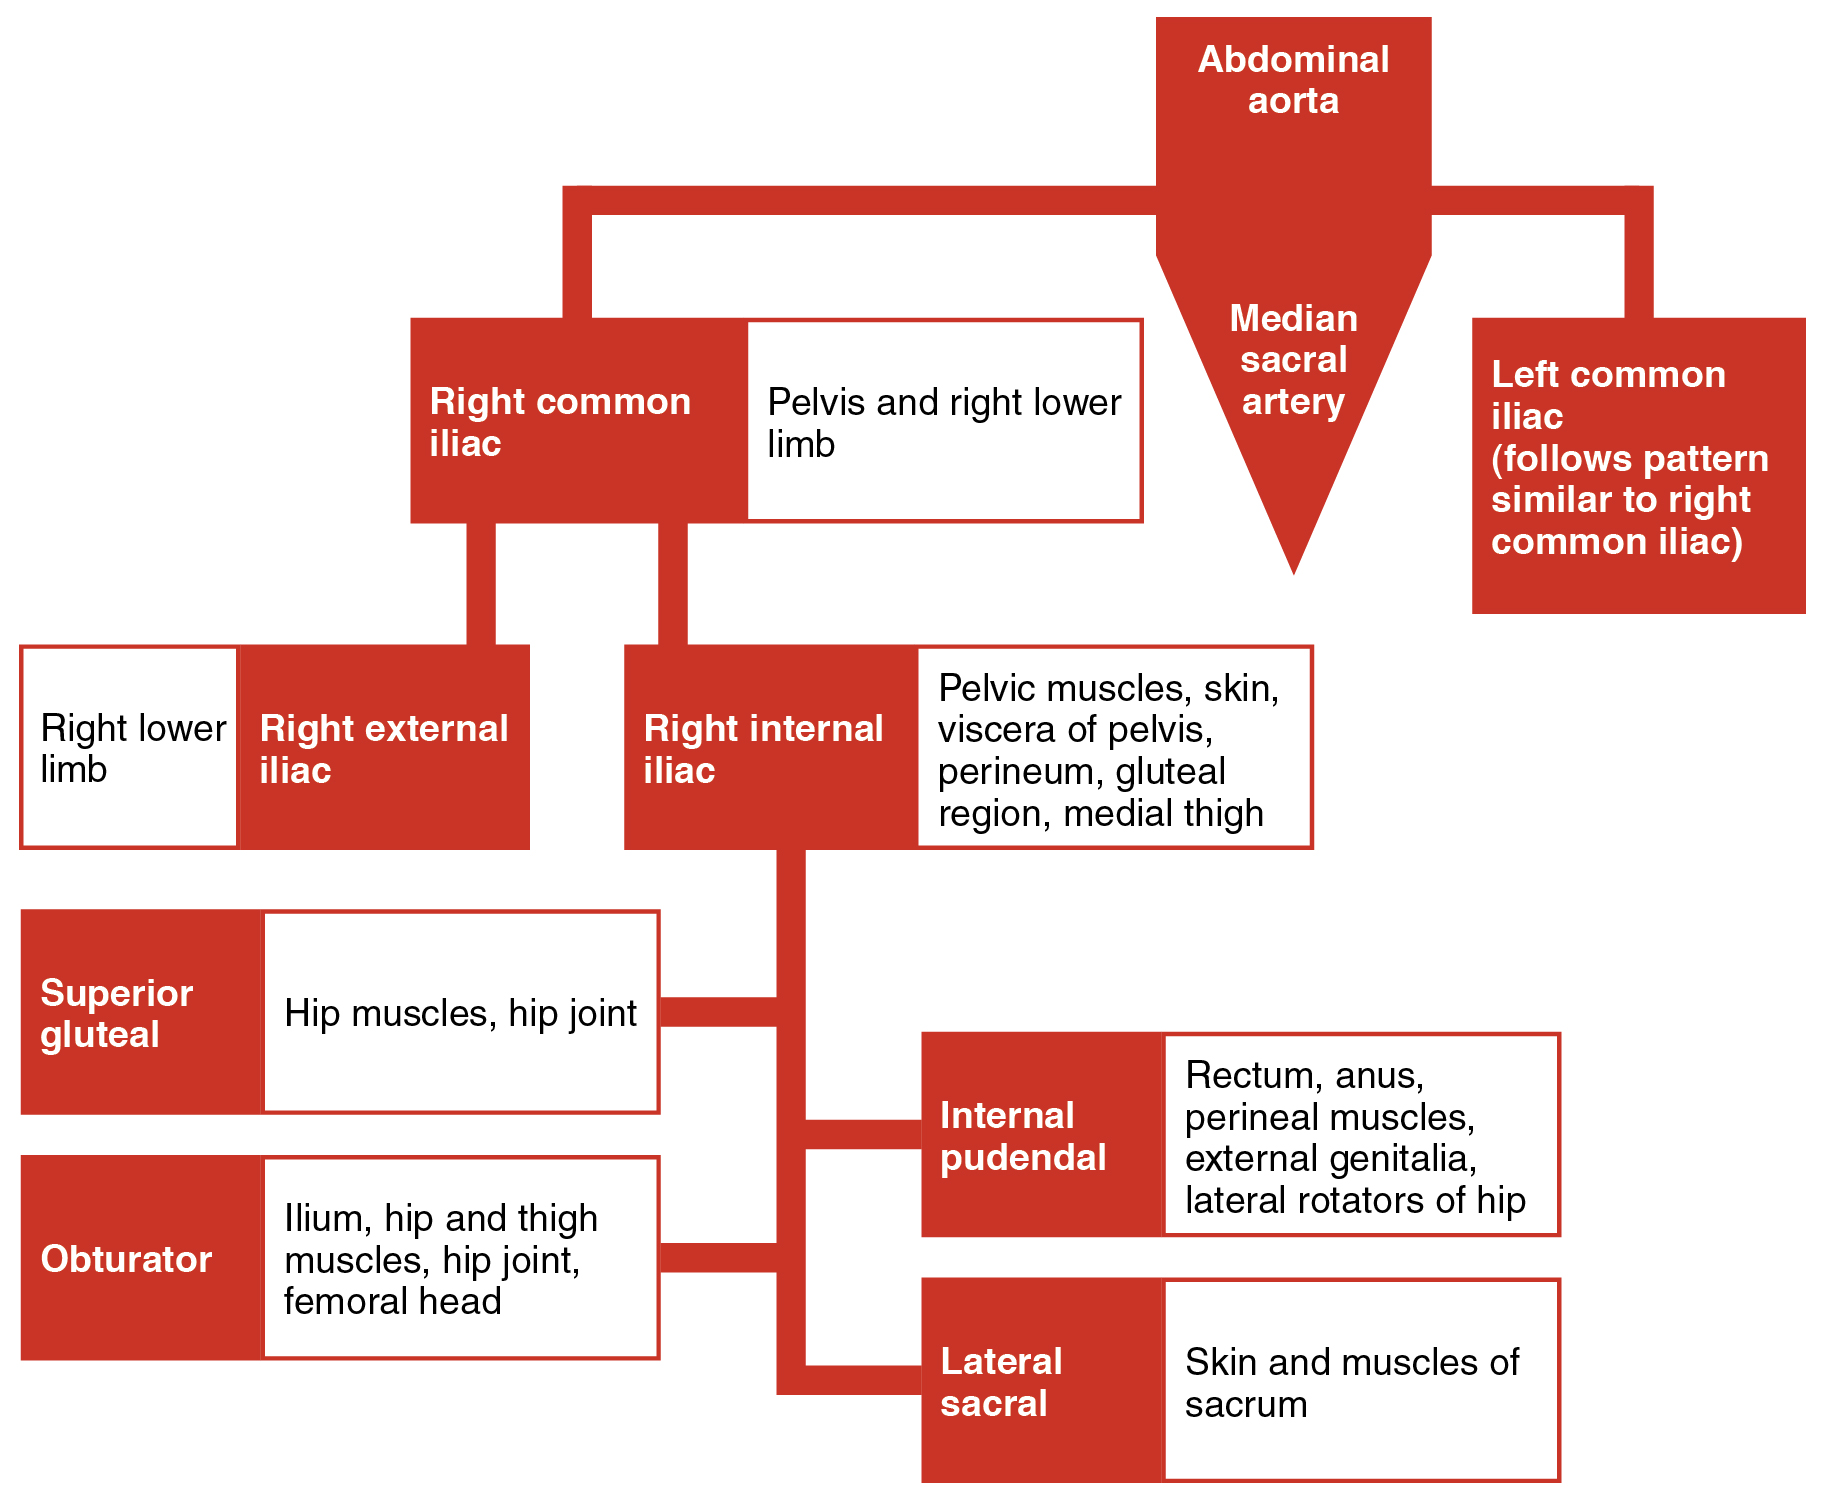 This flowchart shows the different branches into which that the ...